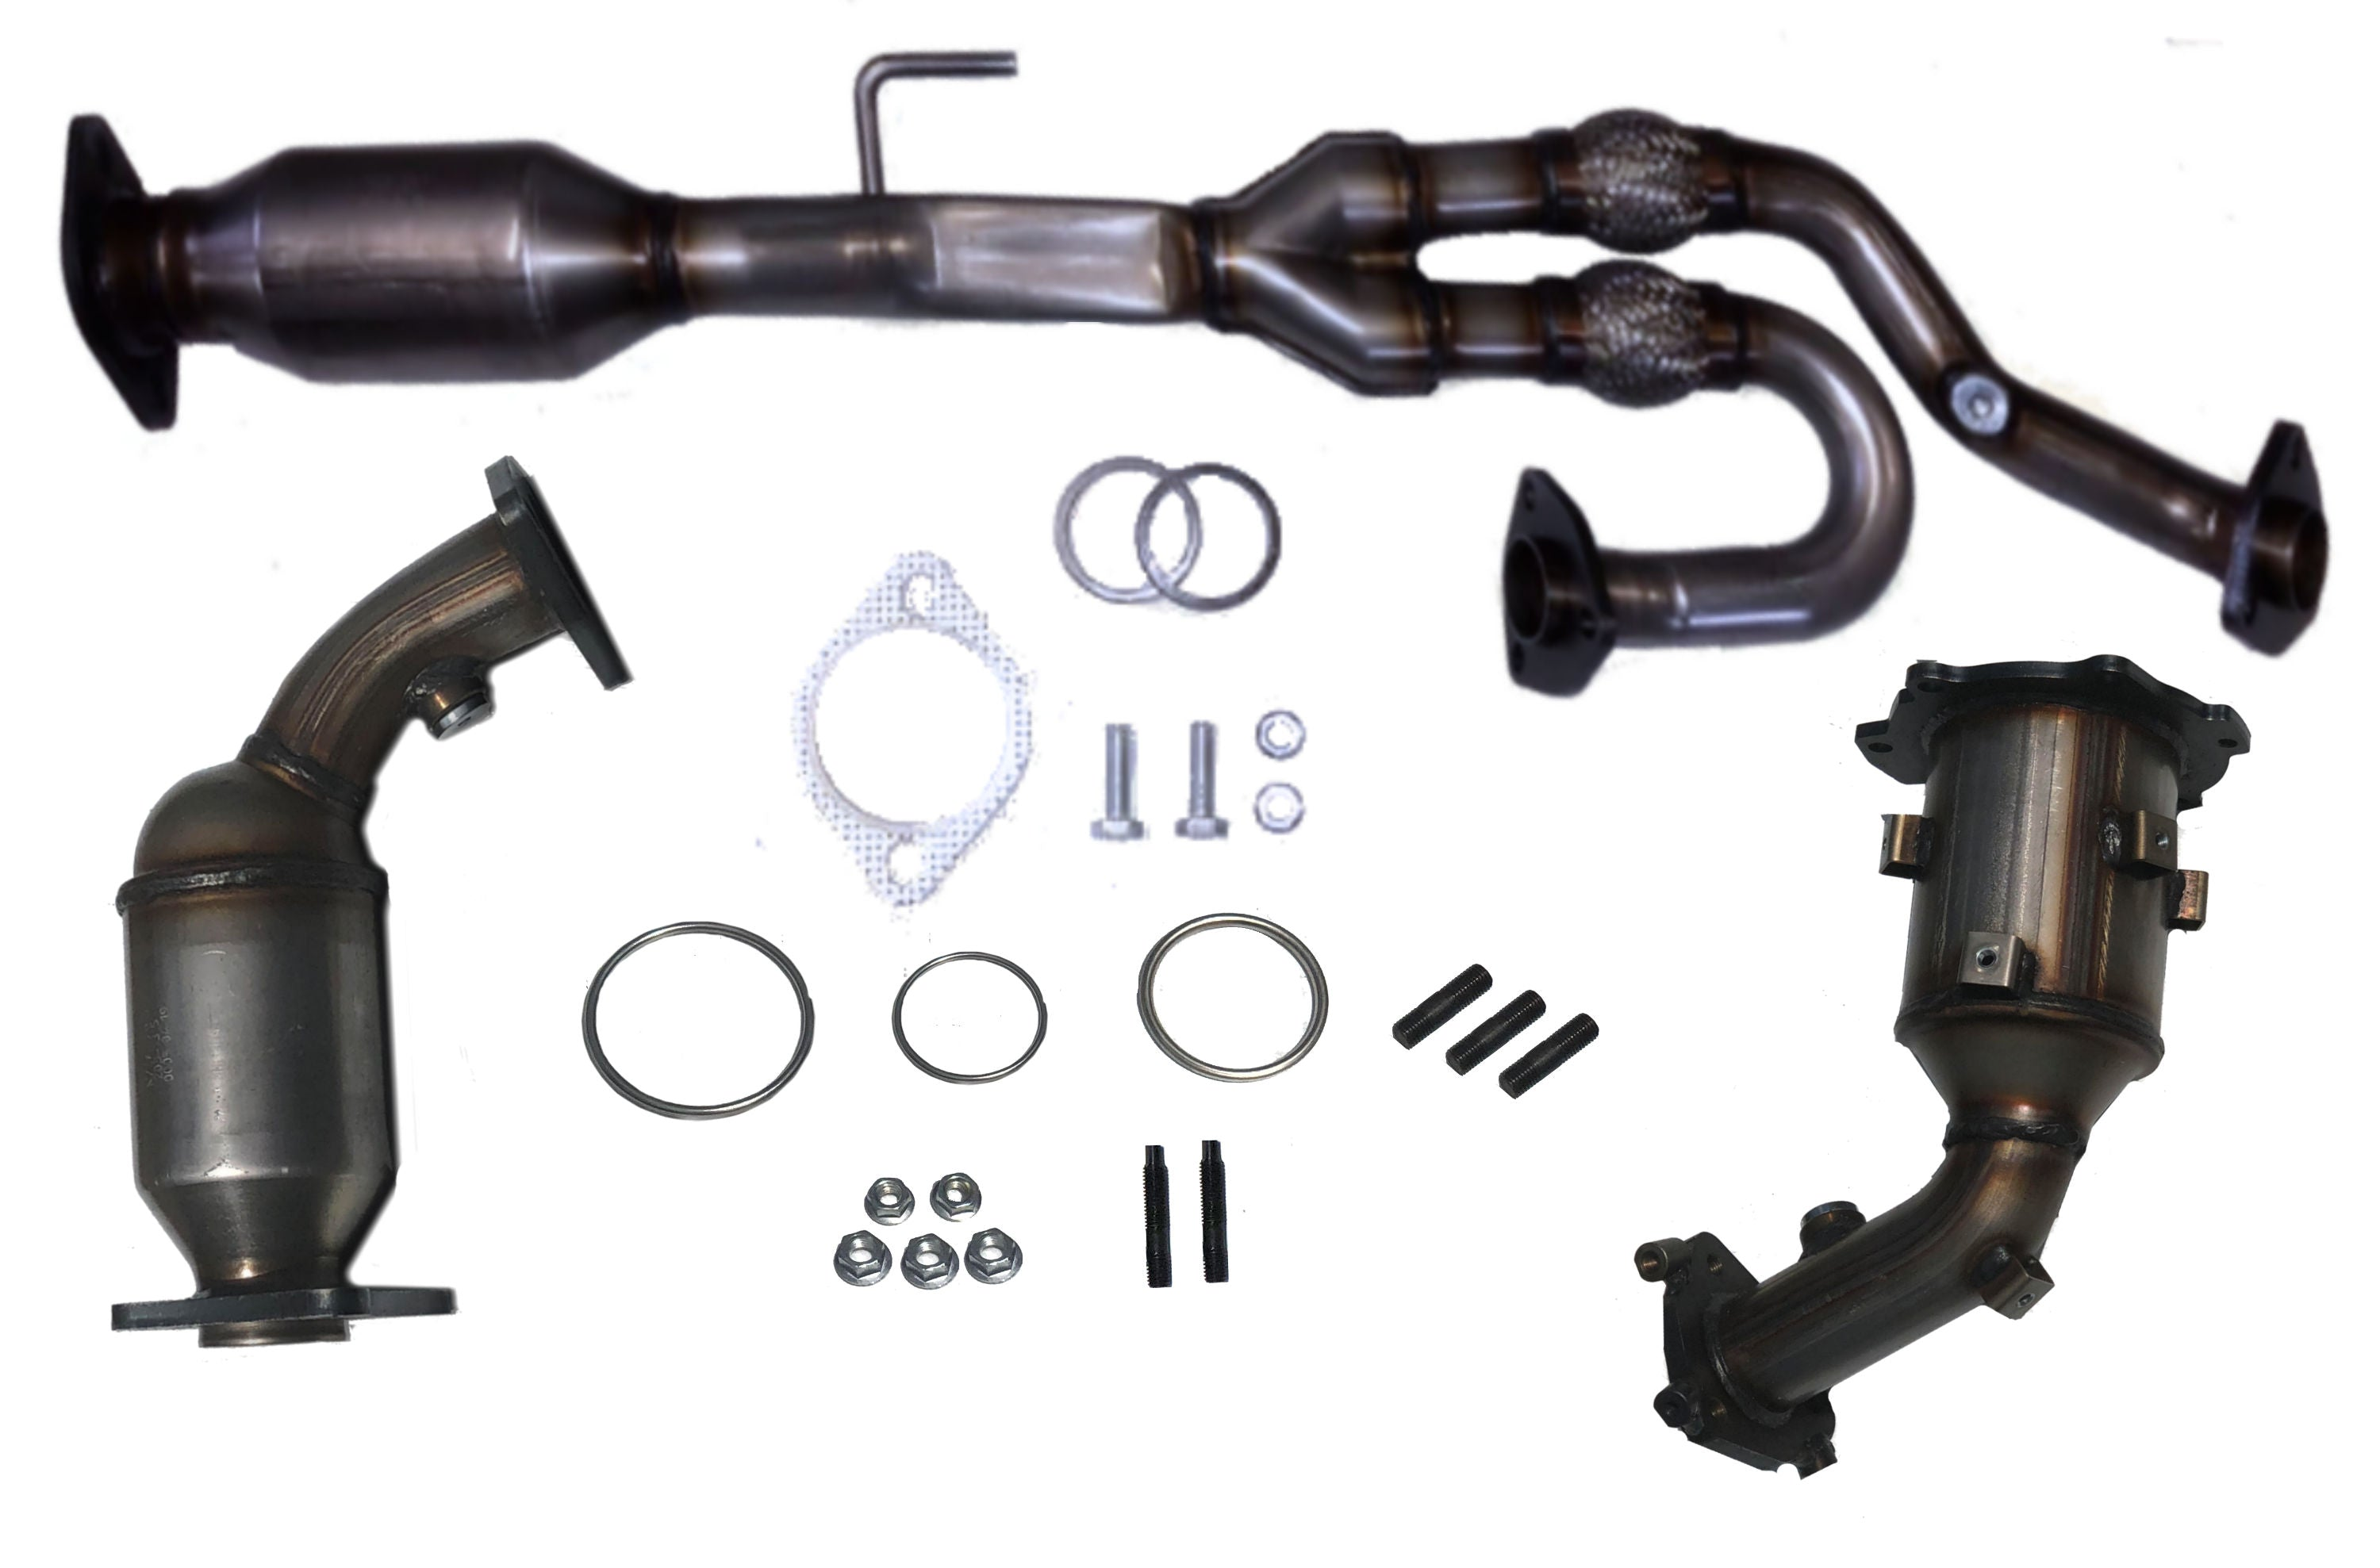 Fits 2003 2004 2005 2006 2007 Nissan Murano 3.5L V6 Catalytic Converters